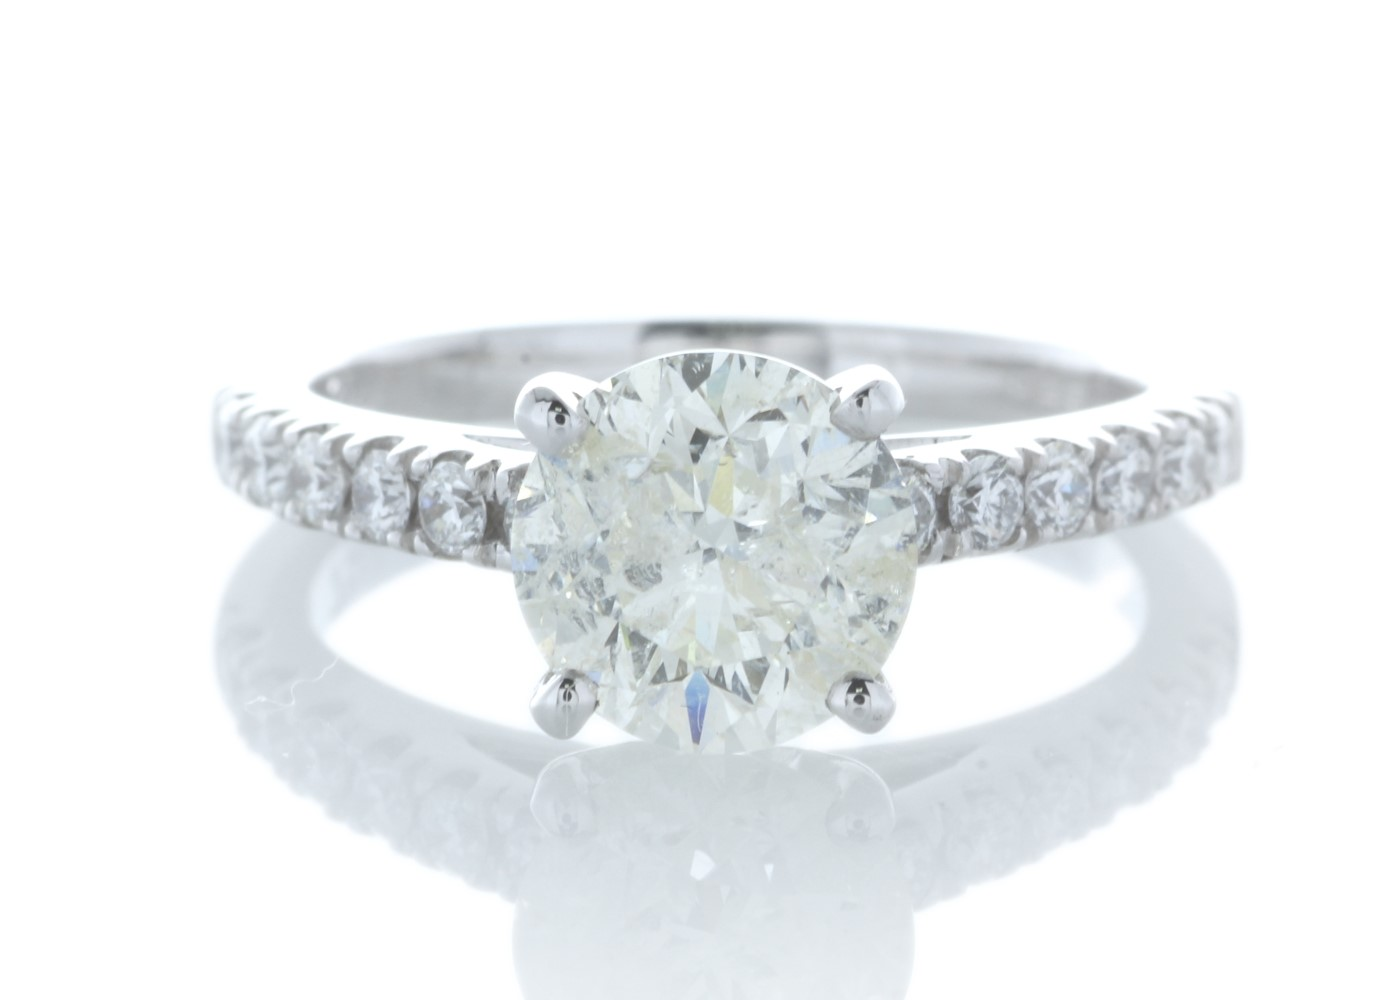 18ct White Gold Stone Set Shoulders Diamond Ring 1.92 Carats